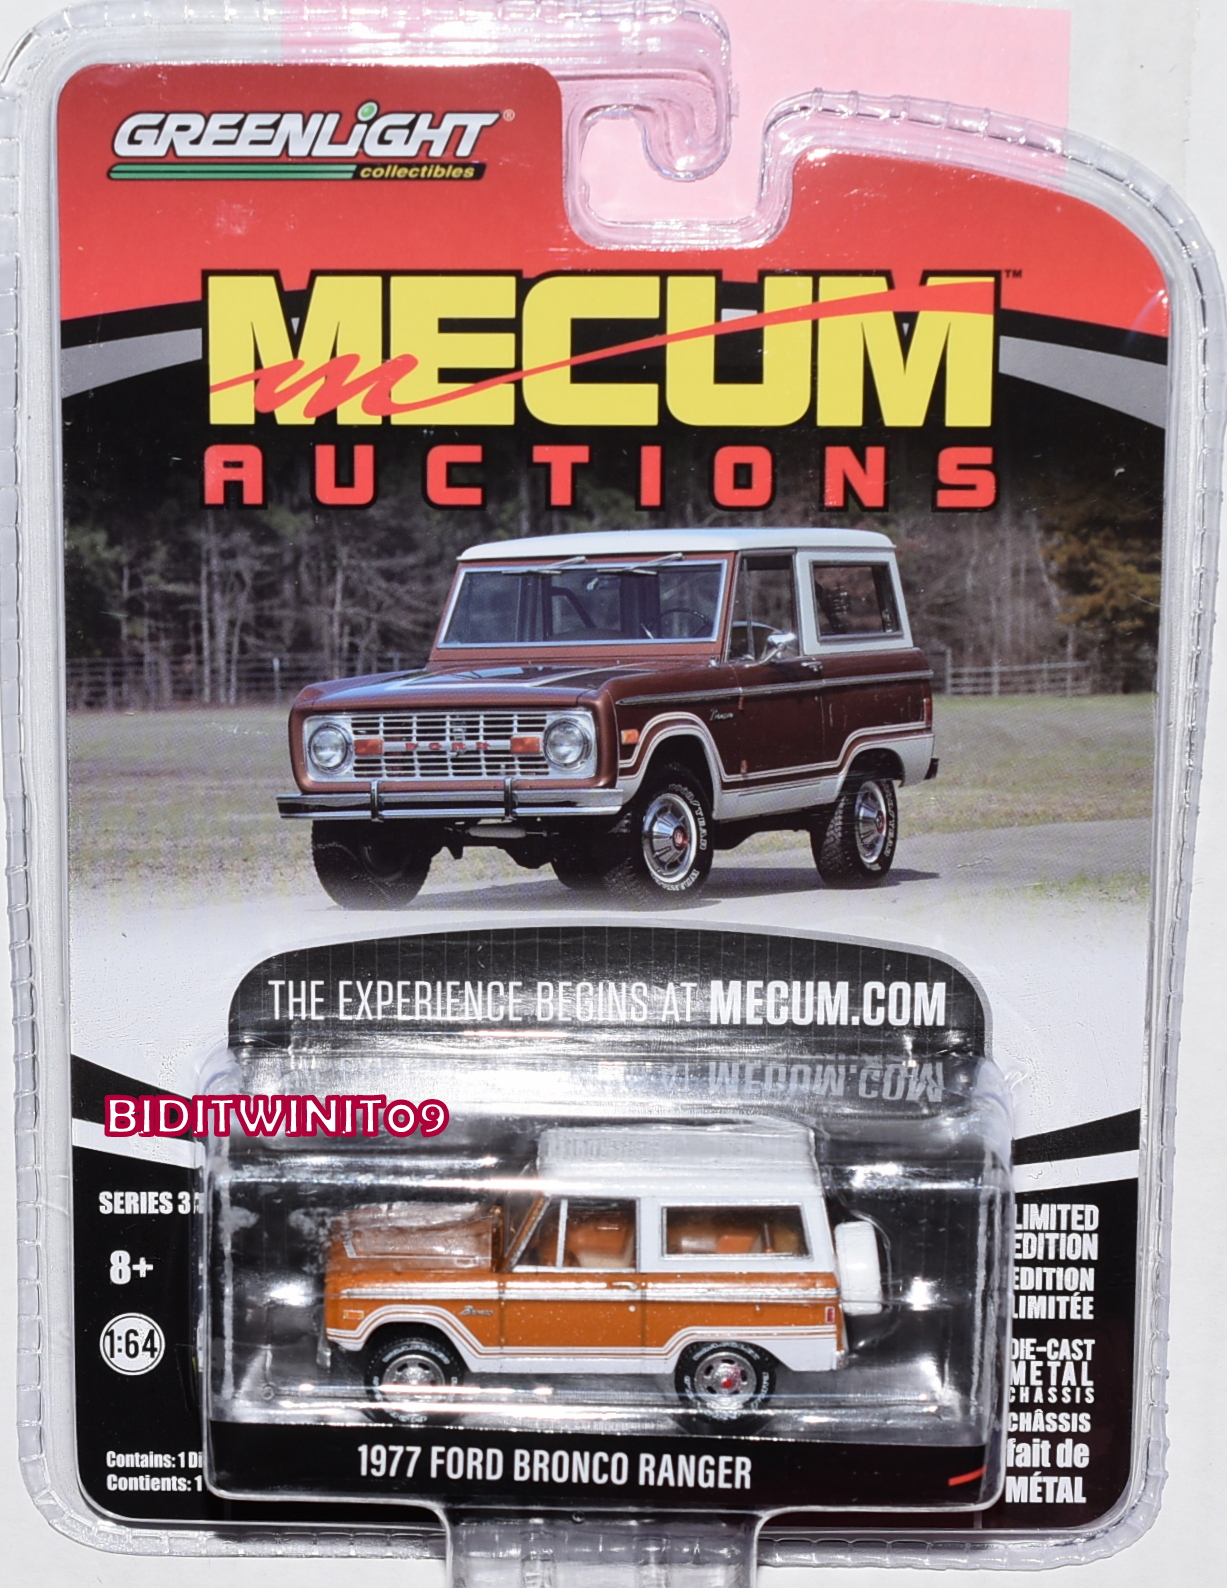 GREENLIGHT MECUM AUCTIONS SERIES 3 1977 FORD BRONCO RANGER